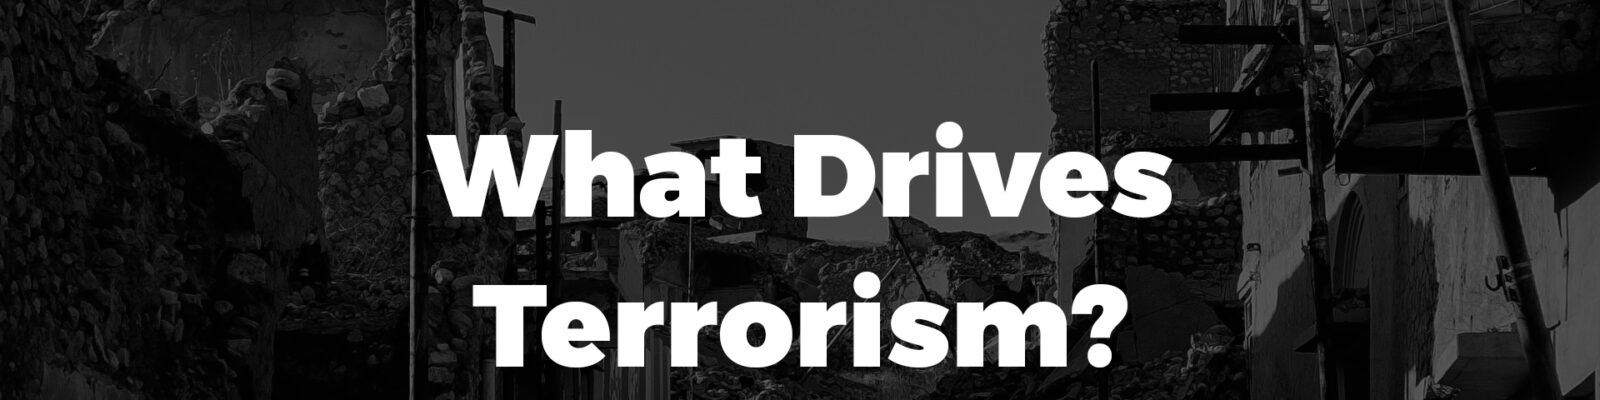 What Drives Terrorism